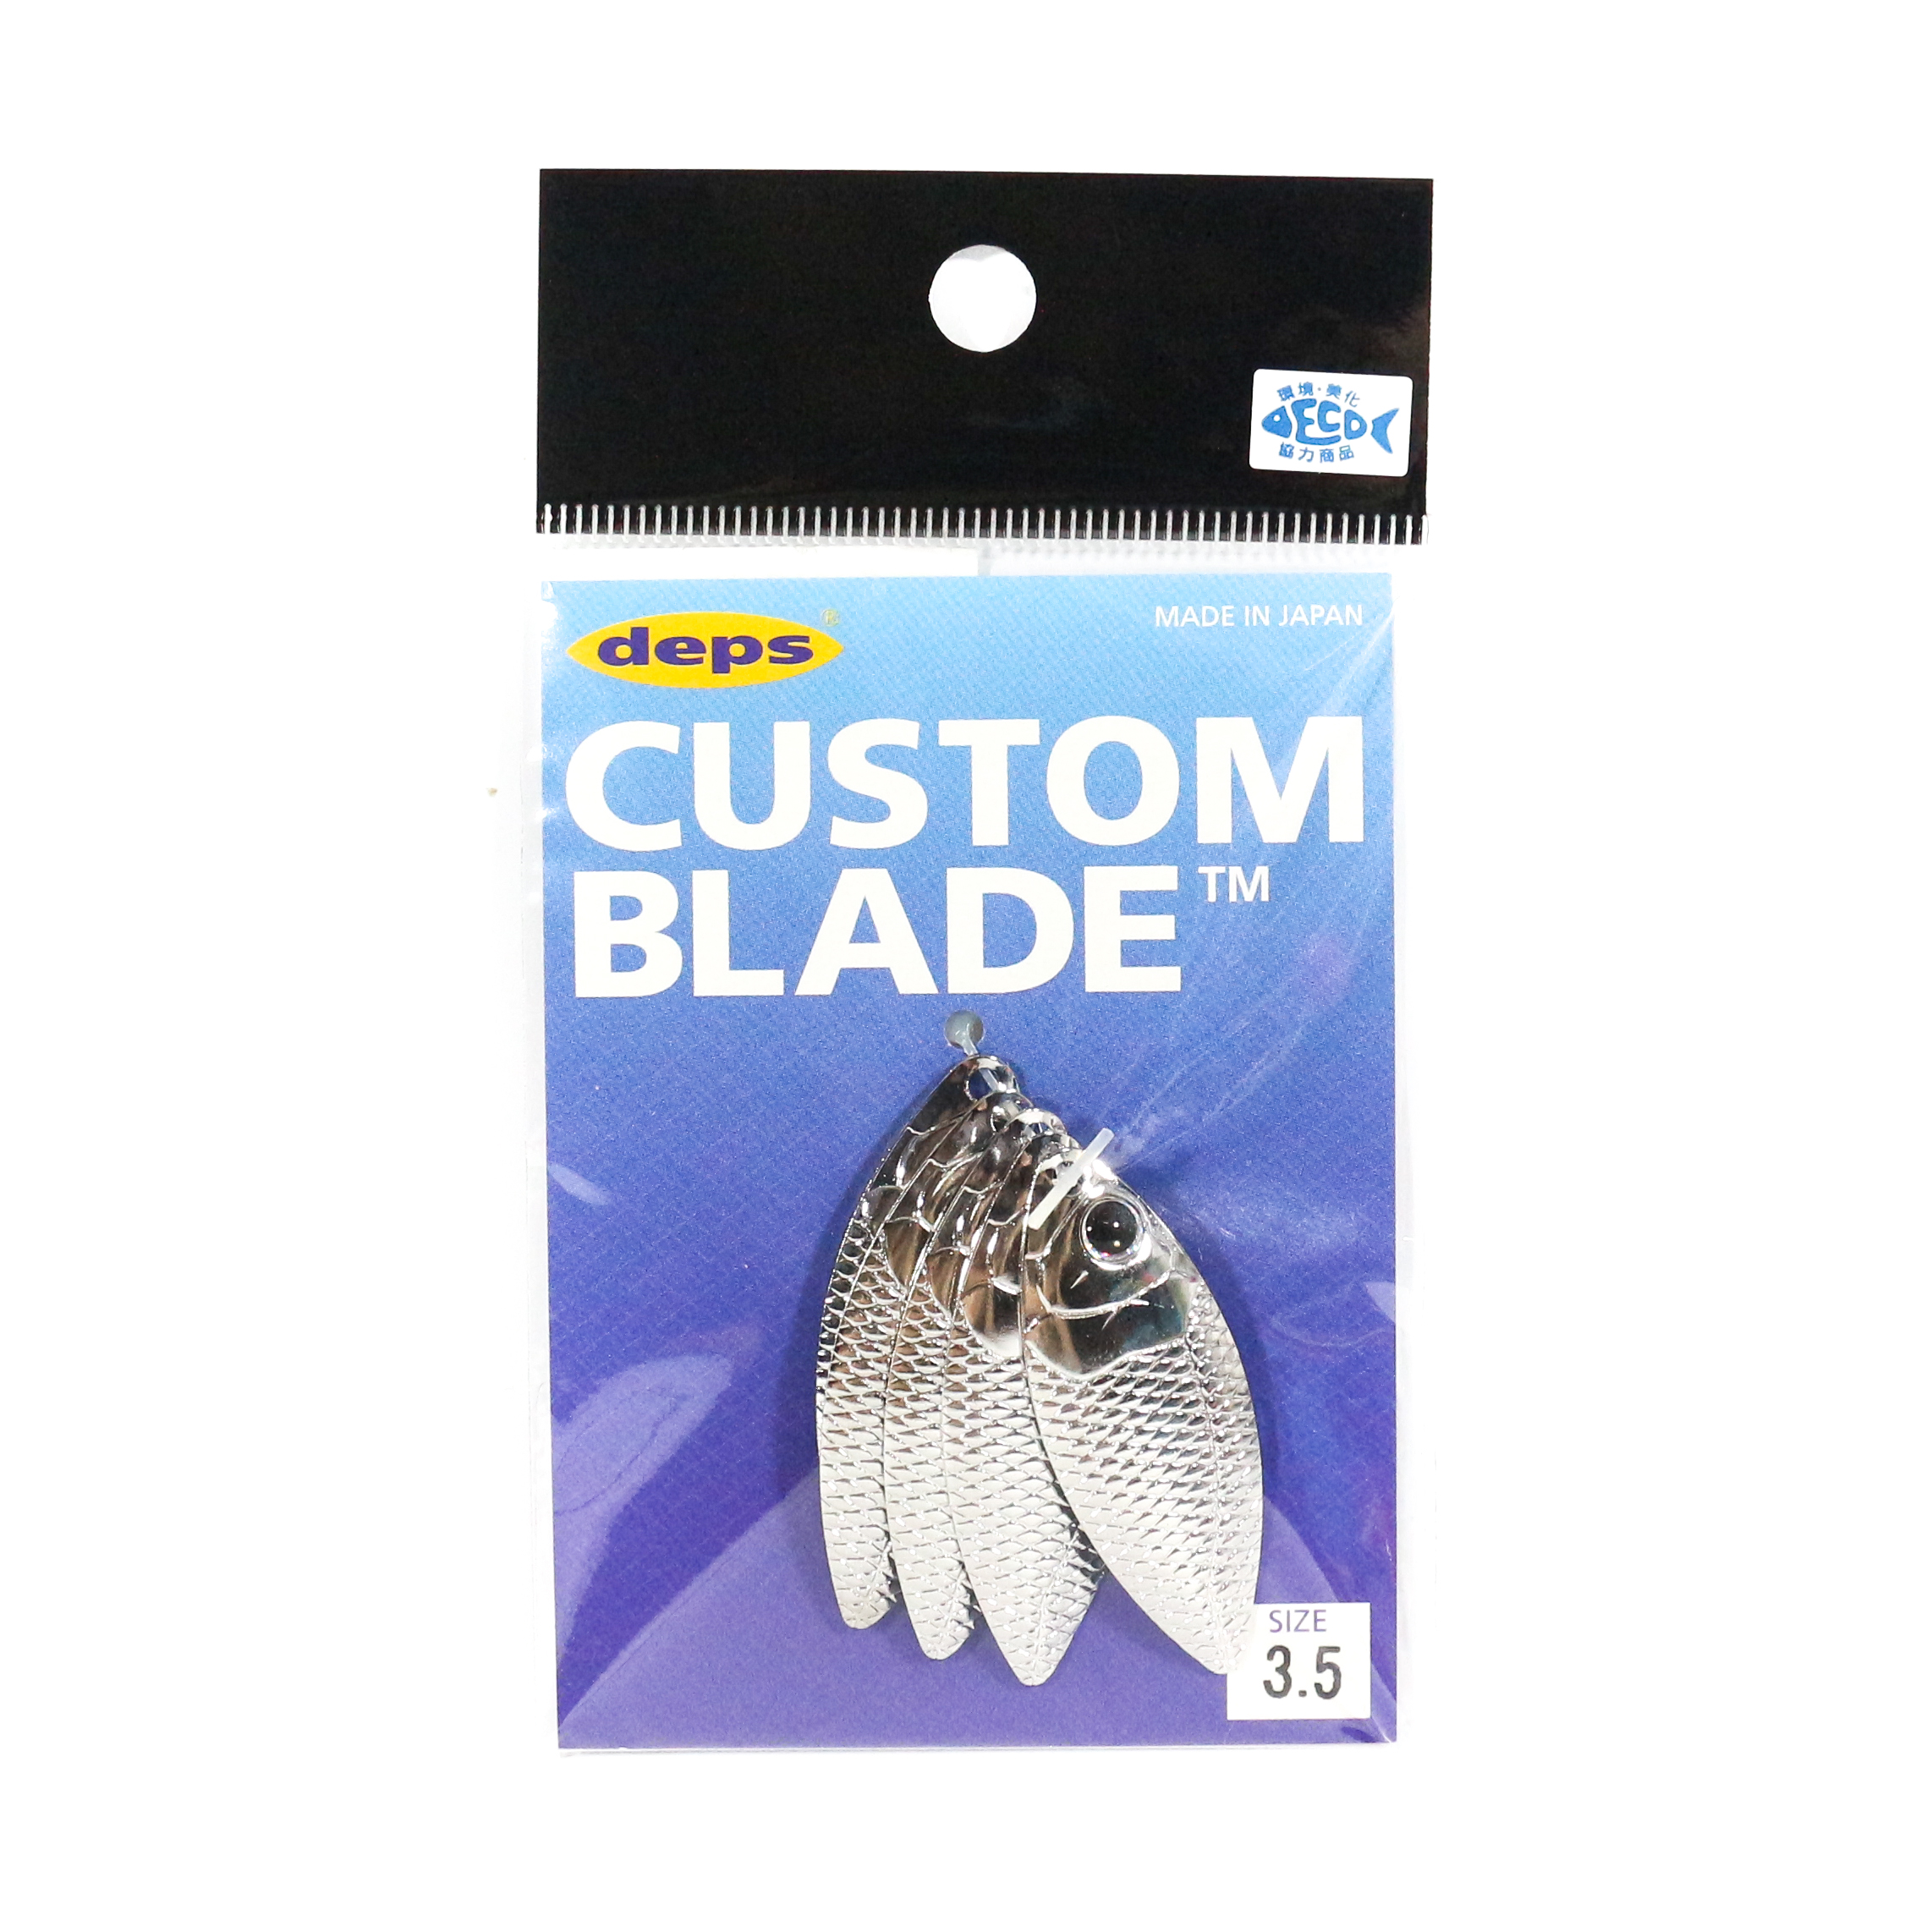 Deps Custom Blade Set Willow Size 3.5 S 5 pieces (0041)